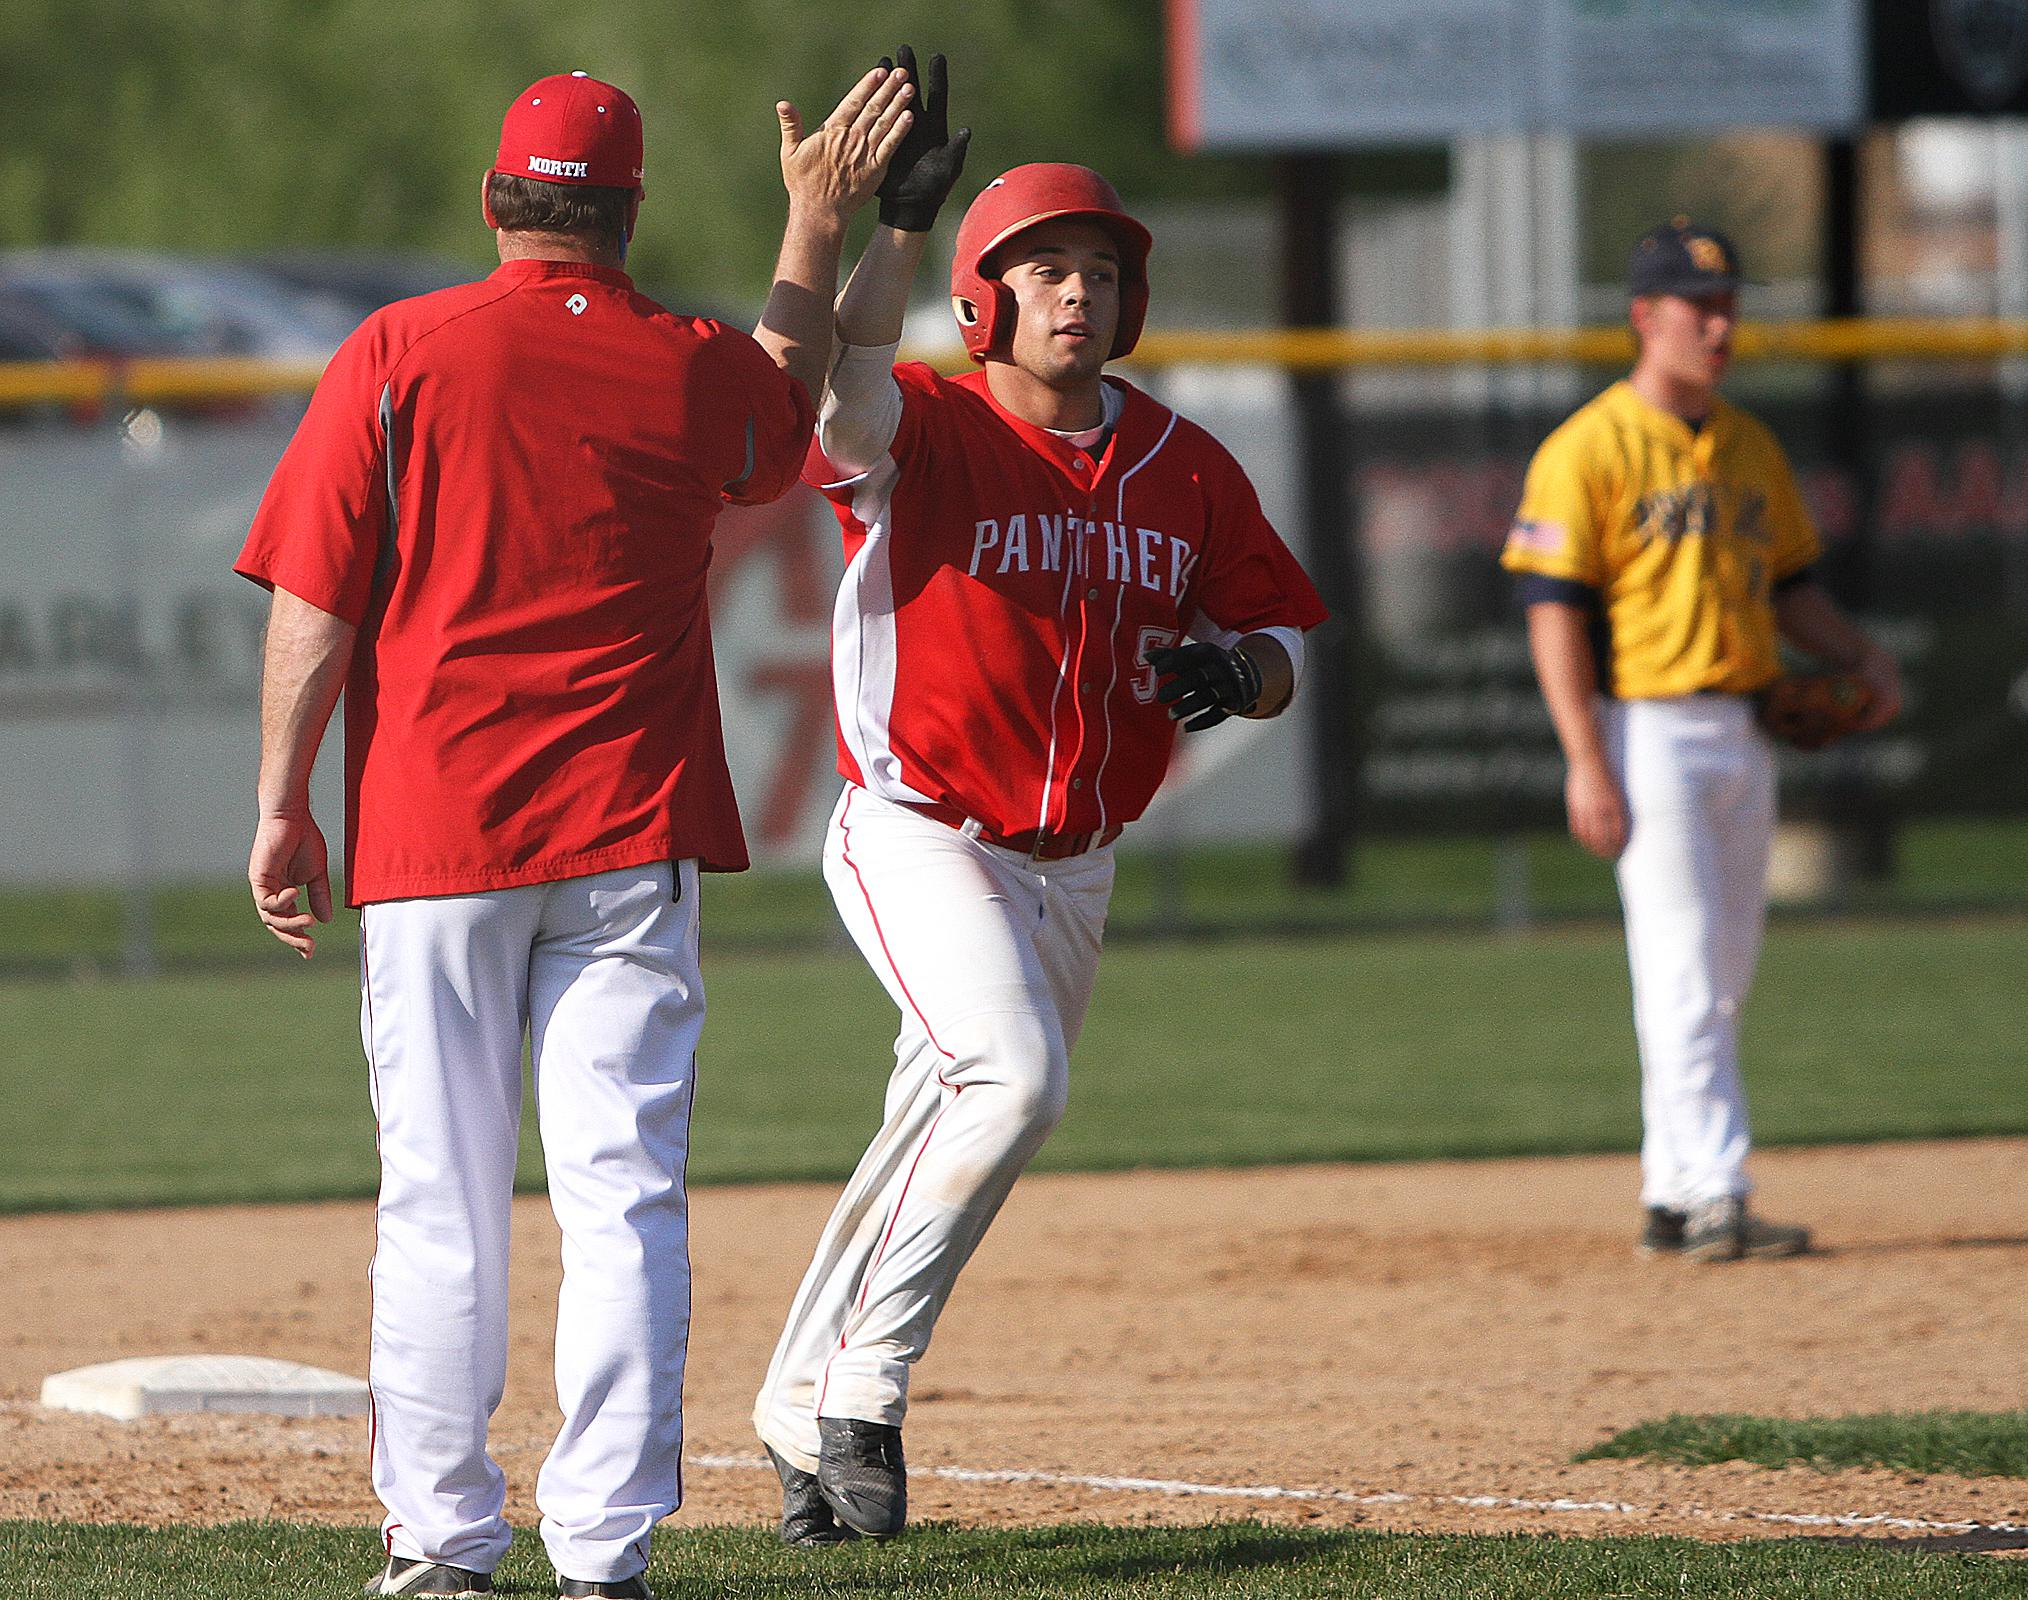 Lakeville North senior Nick Juaire gets a high five as he rounds third after knocking a fifth-inning home run in Wednesday afternoon's 6-3 loss to Prior Lake. Juaire went 2-for-4 with 3 RBI. Photo by Drew Herron, SportsEngine